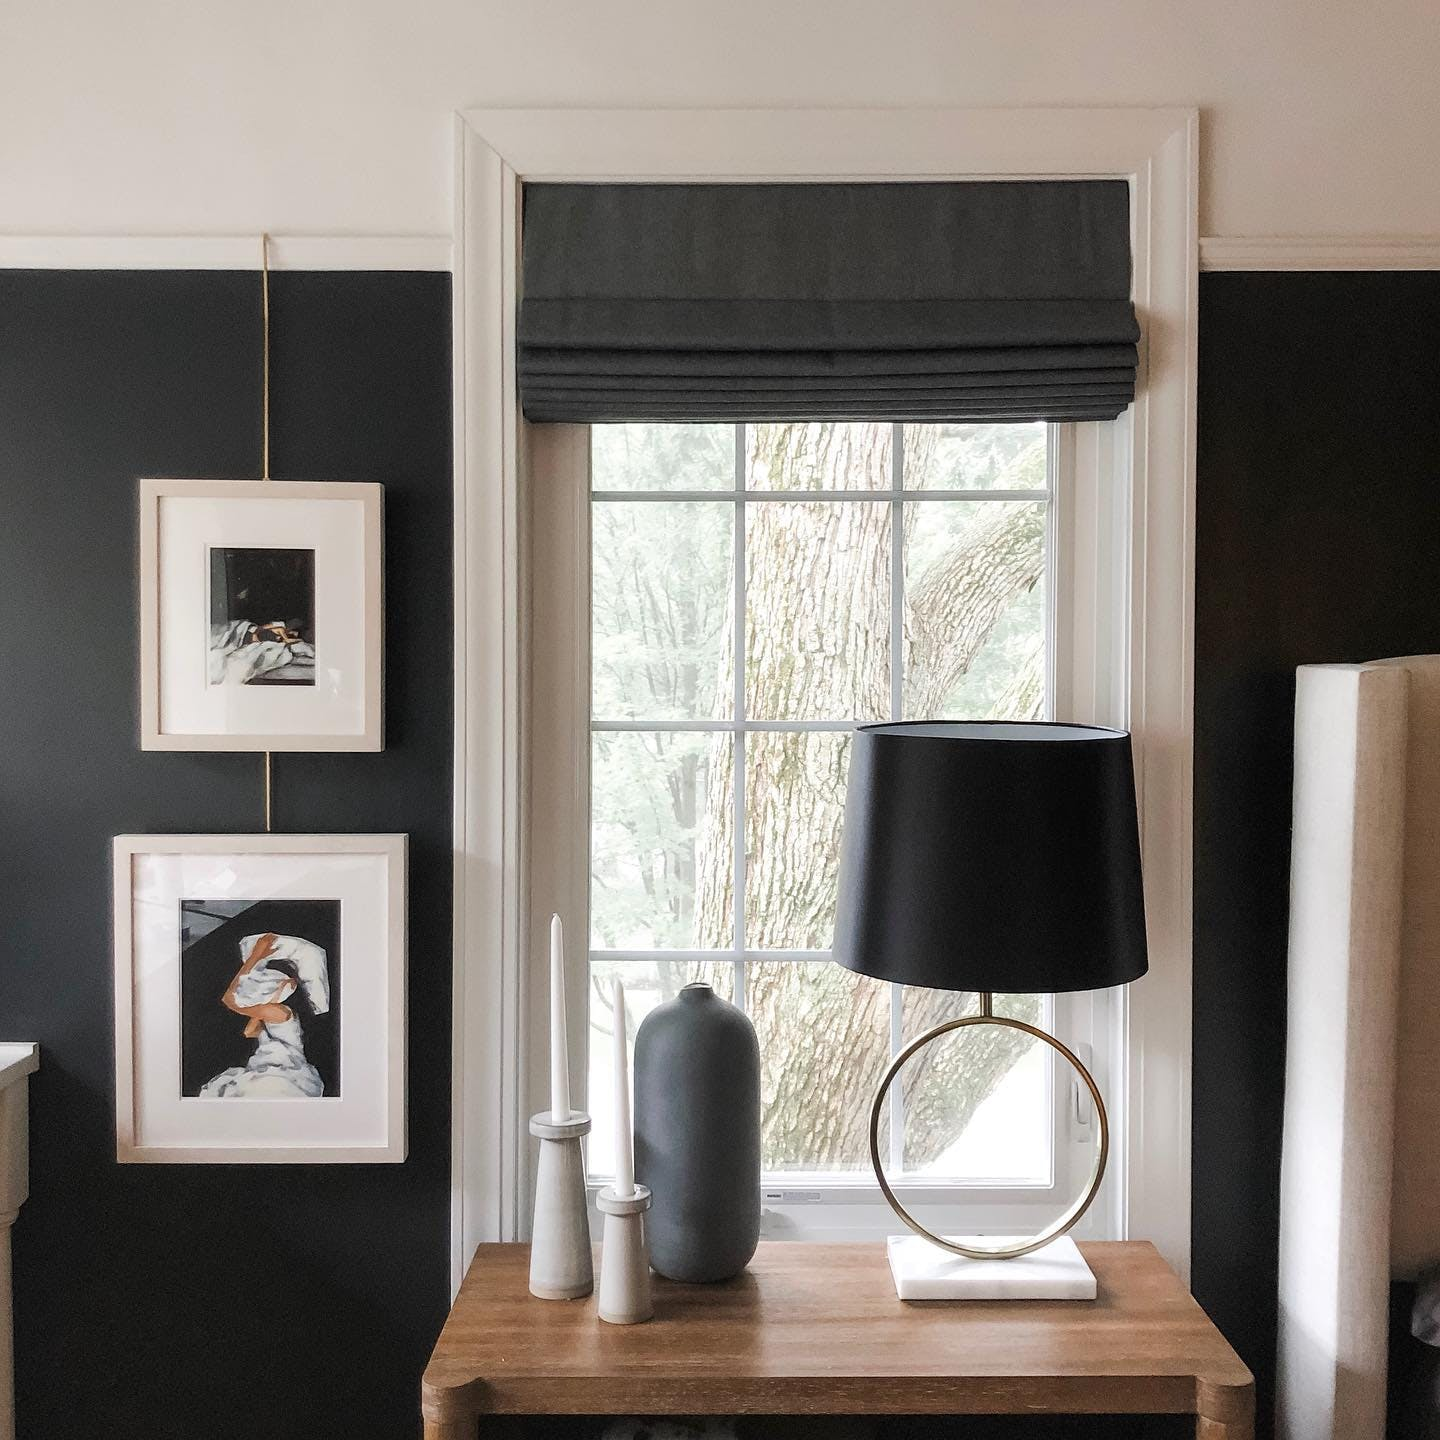 Wood bedside table in front of a window with a black wall and dark slate colored roman shade.